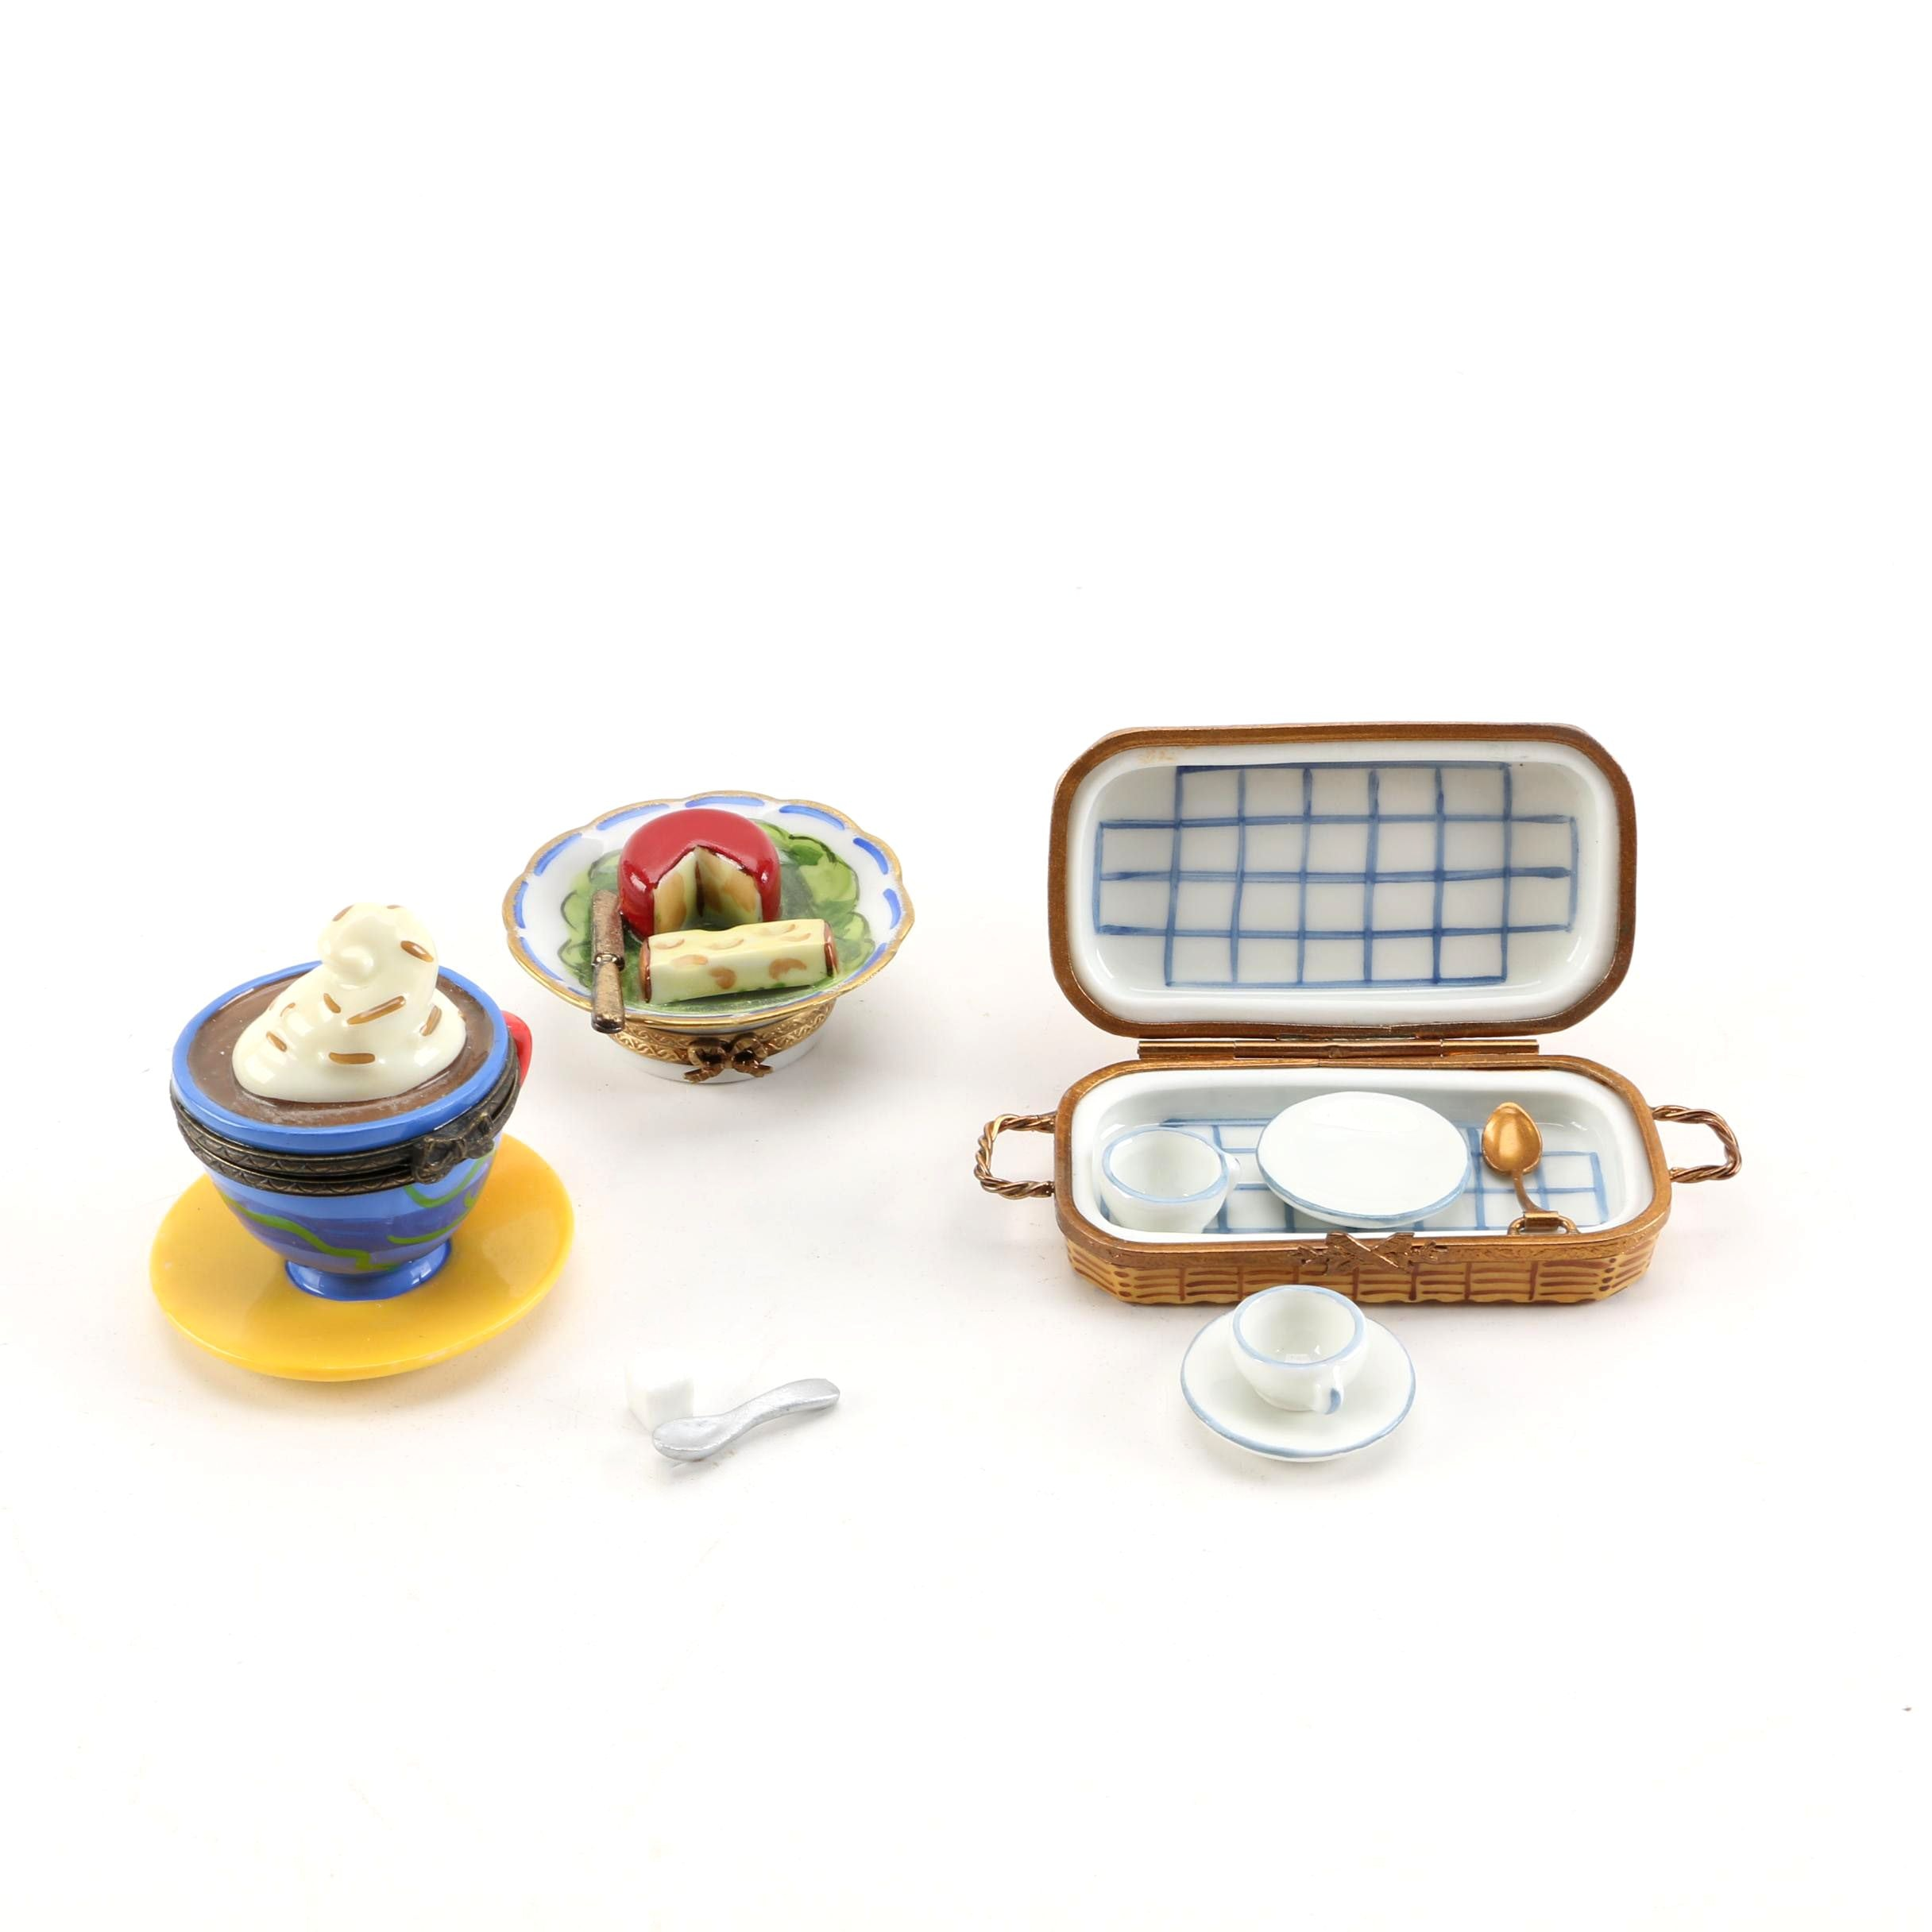 Porcelain Food-Themed Trinket Boxes featuring Limoges